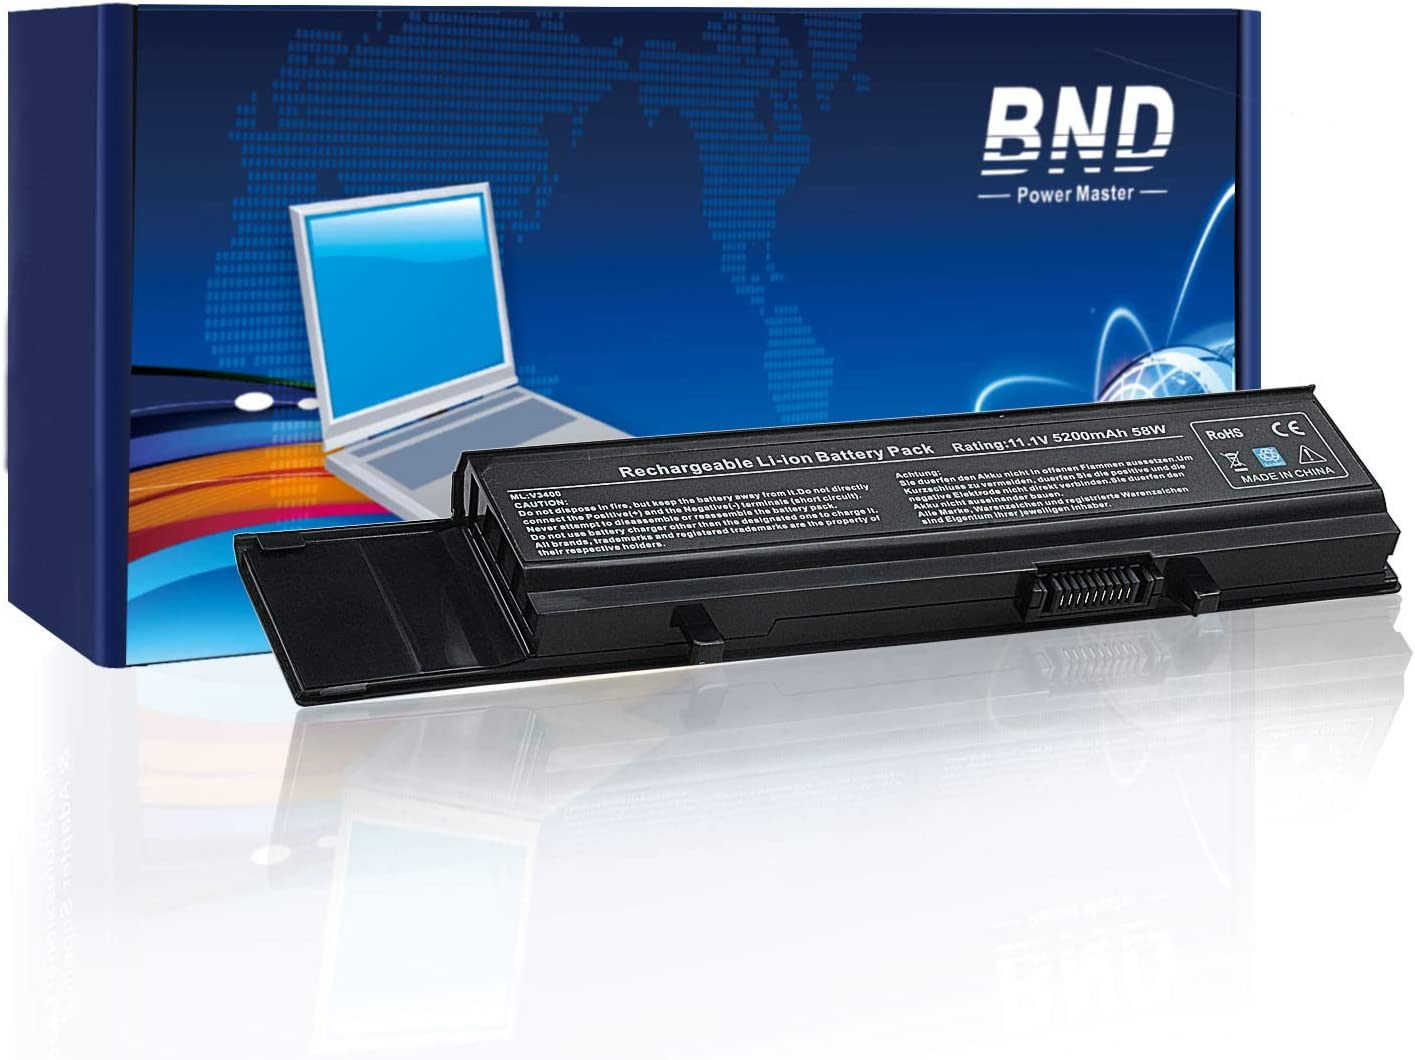 BND Laptop Battery for Dell Vostro 3500 3700 3400, fits P/N 7FJ92 Y5XF9 CYDWV - [6-Cell 5200mAh/58Wh]